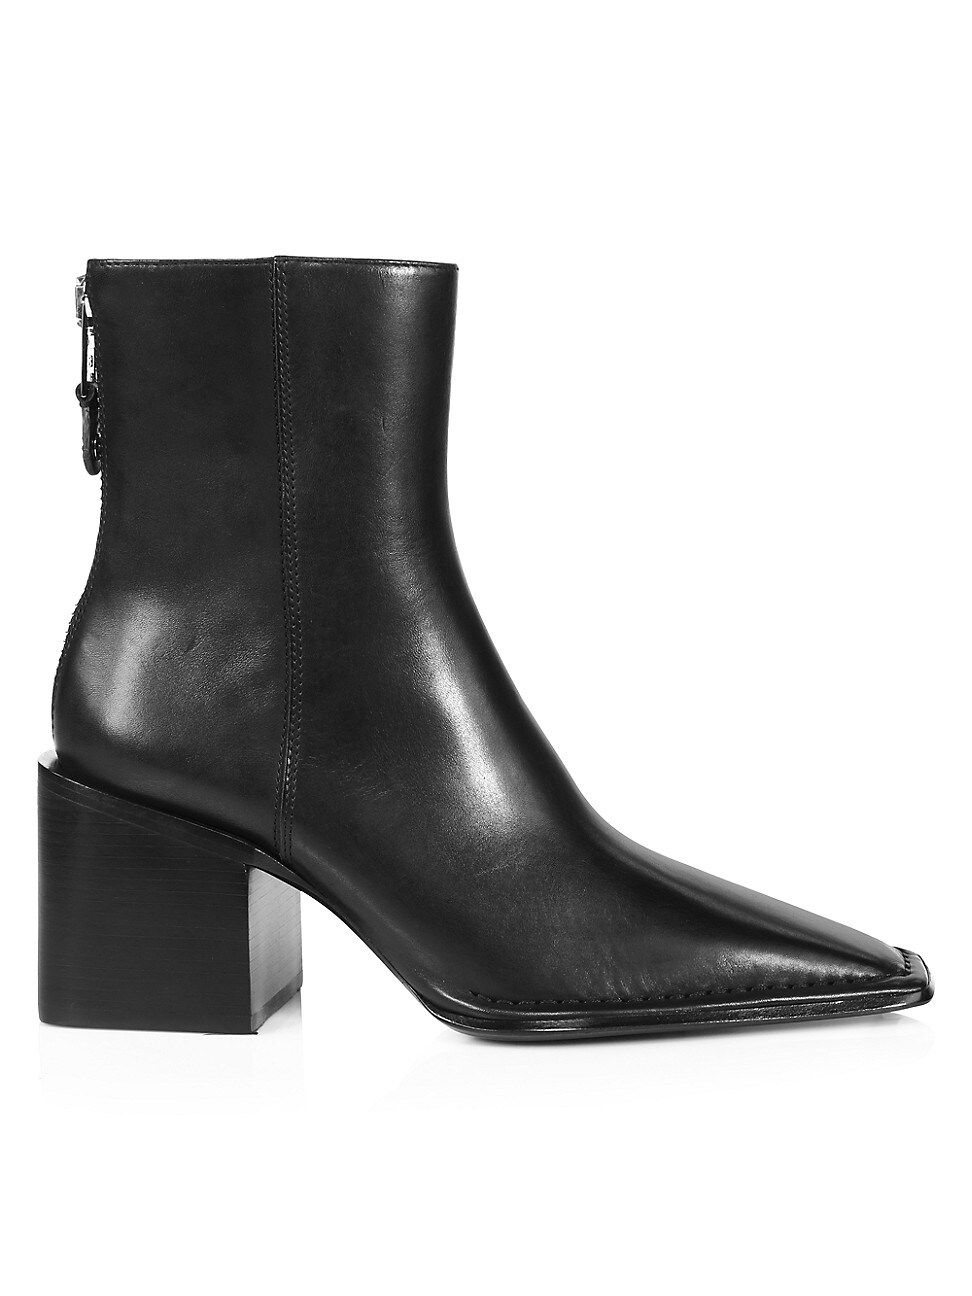 Alexander Wang WOMEN'S PARKER SQUARE-TOE LEATHER ANKLE BOOTS